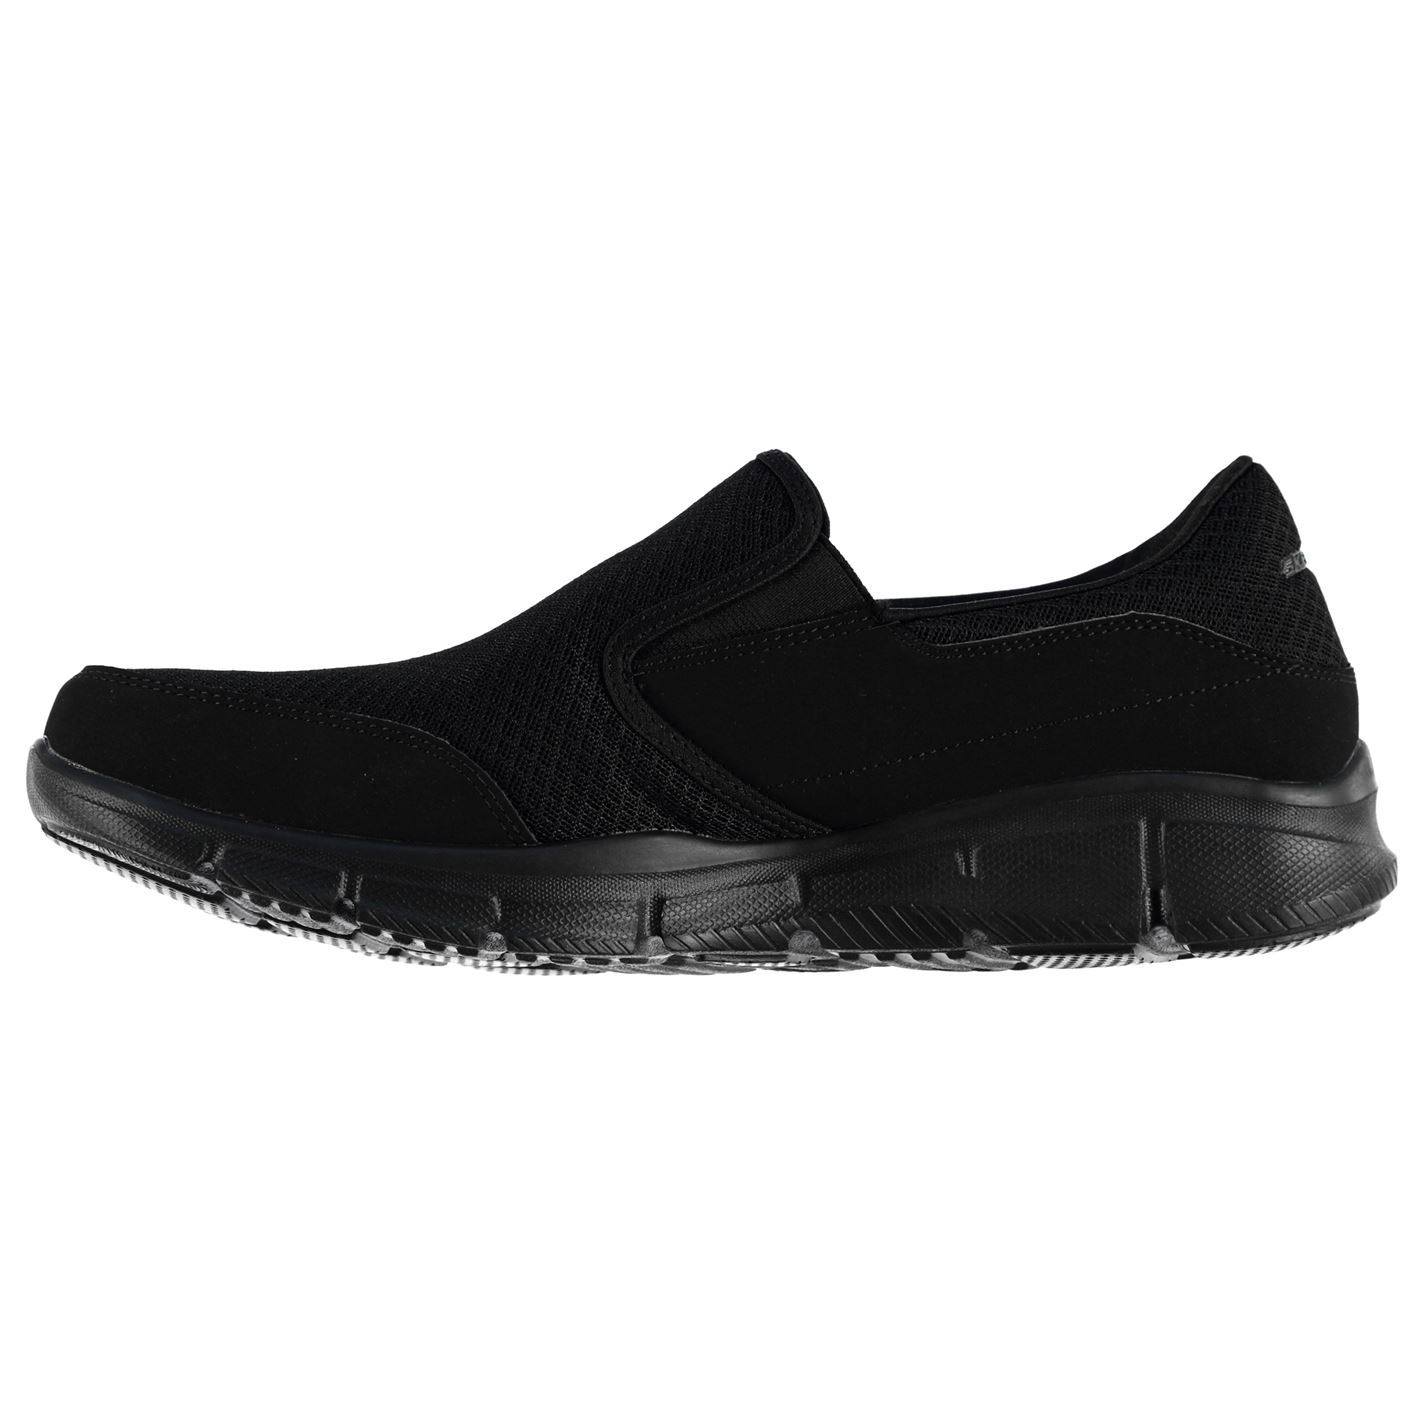 ... Skechers Equalizer Persistent Trainers Mens Black Sports Shoes Sneakers  Footwear ea9fb6a366